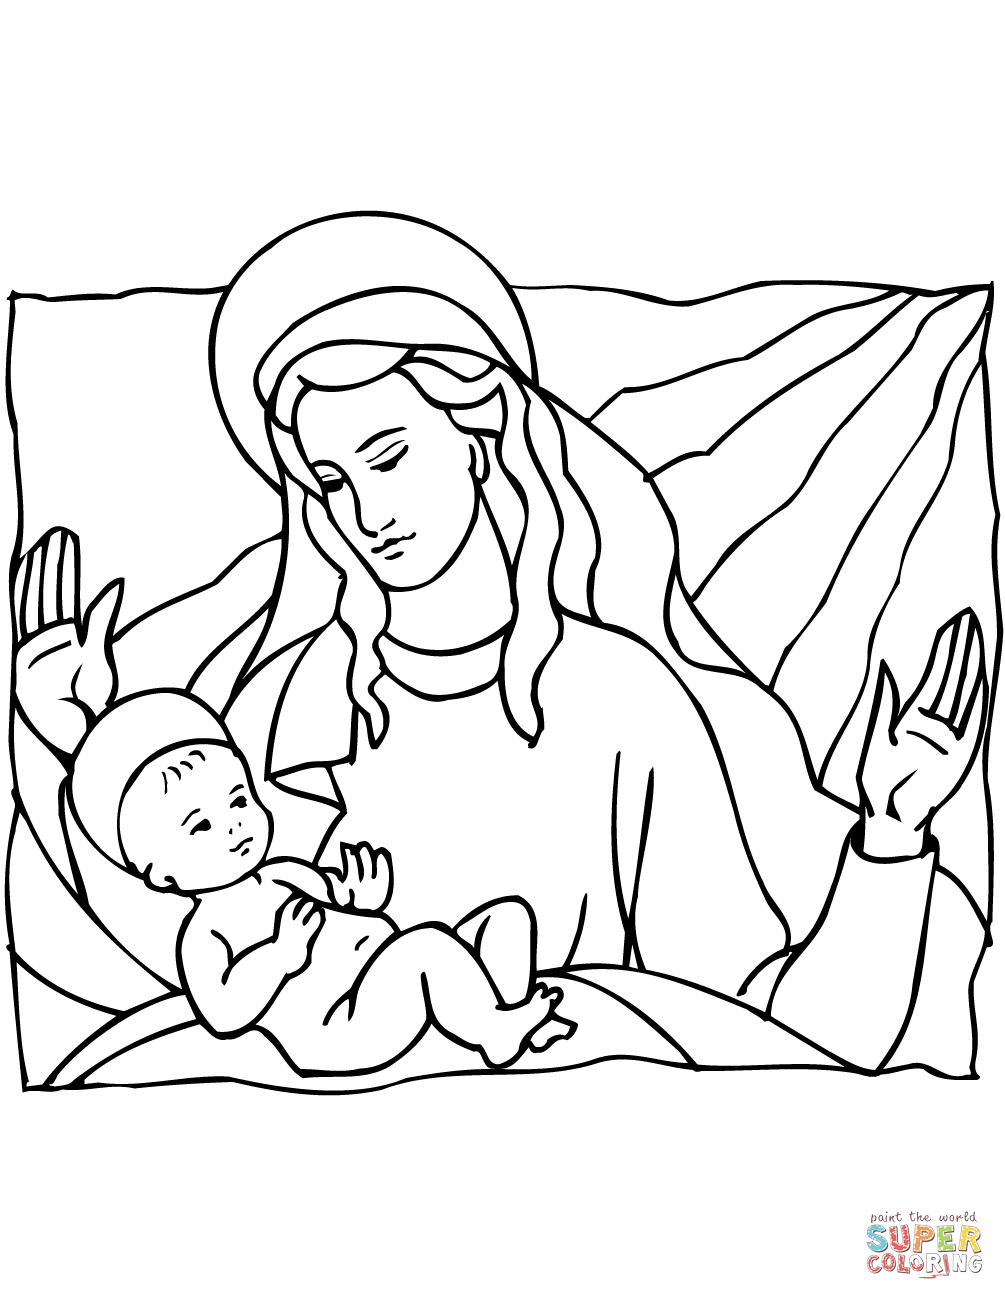 Merry Christmas Jesus Coloring Pages With Mary And Baby Page Free Printable